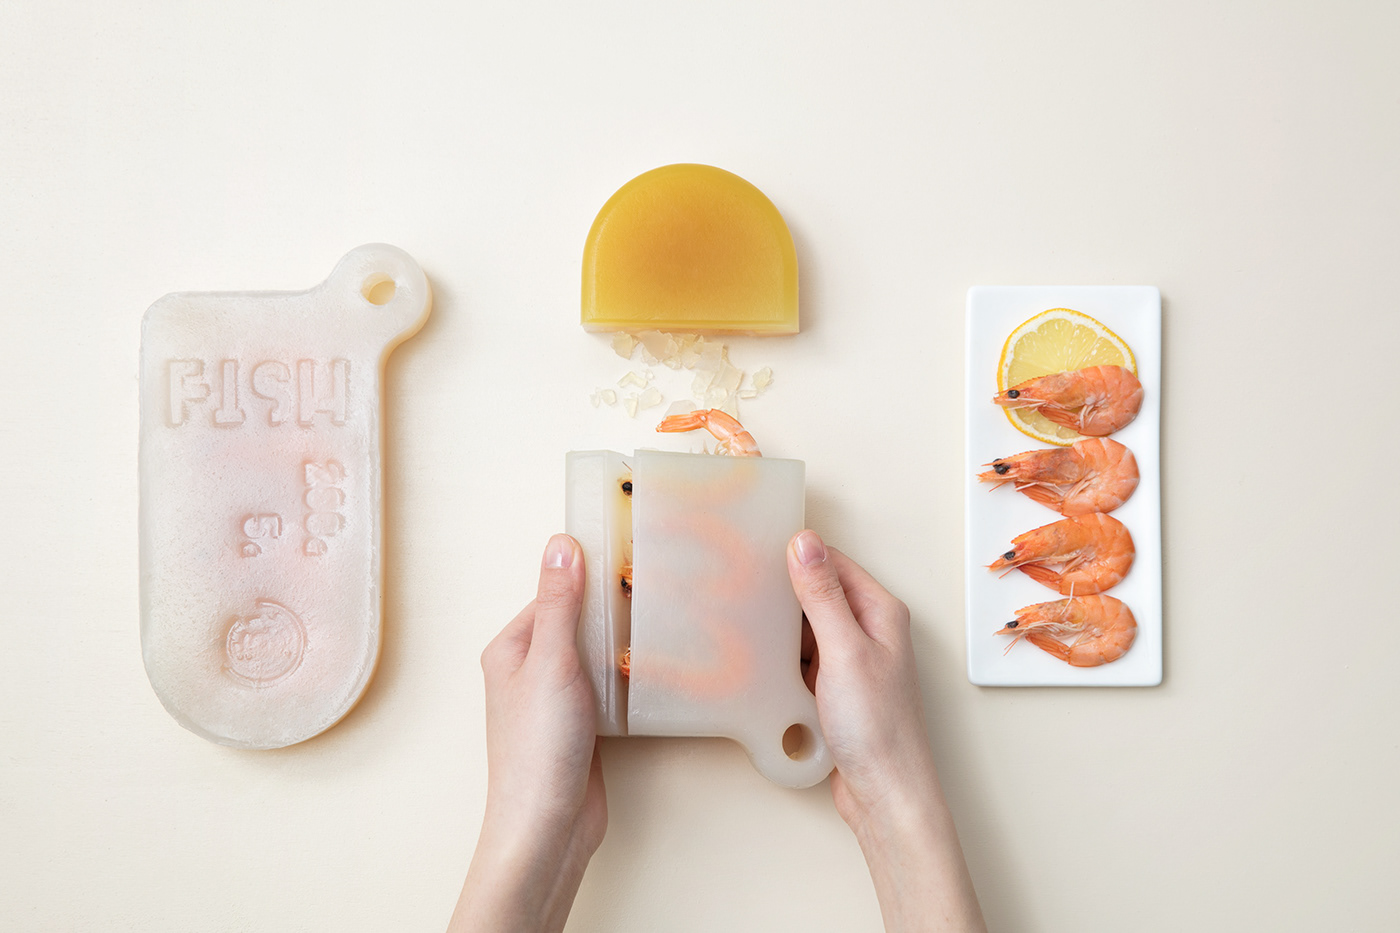 food design biodegradable Packaging futuristic Photography  animation  research 3dprinting food styling